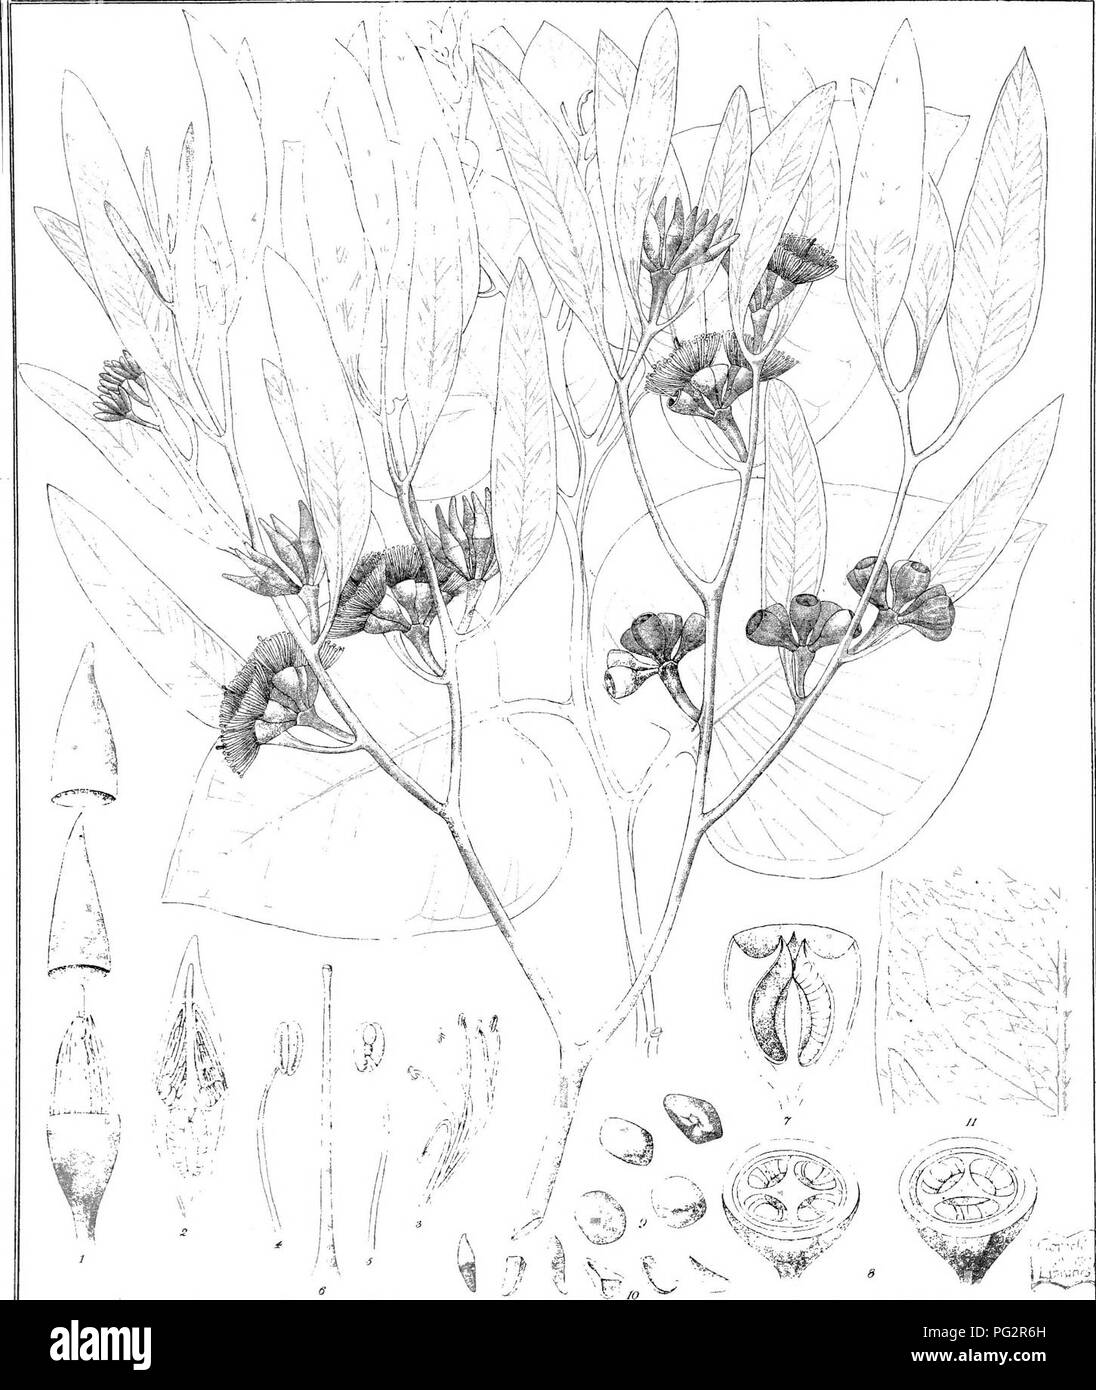 . Eucalyptographia. A descriptive atlas of the eucalypts of Australia and the adjoining islands;. Eucalyptus; Botany. lodl dd. C Iro.d^: â . C' lil>. rM d-irexil Ipaai Li^Tio Gov. Praitin? Office M'^lb li'c3dj])iiE^ iF©(clii®iiâ ScIidUffr. Please note that these images are extracted from scanned page images that may have been digitally enhanced for readability - coloration and appearance of these illustrations may not perfectly resemble the original work.. Mueller, Ferdinand von, 1825-1896. Melbourne, J. Ferres, Govt. Print; [etc. ,etc. ] - Stock Image